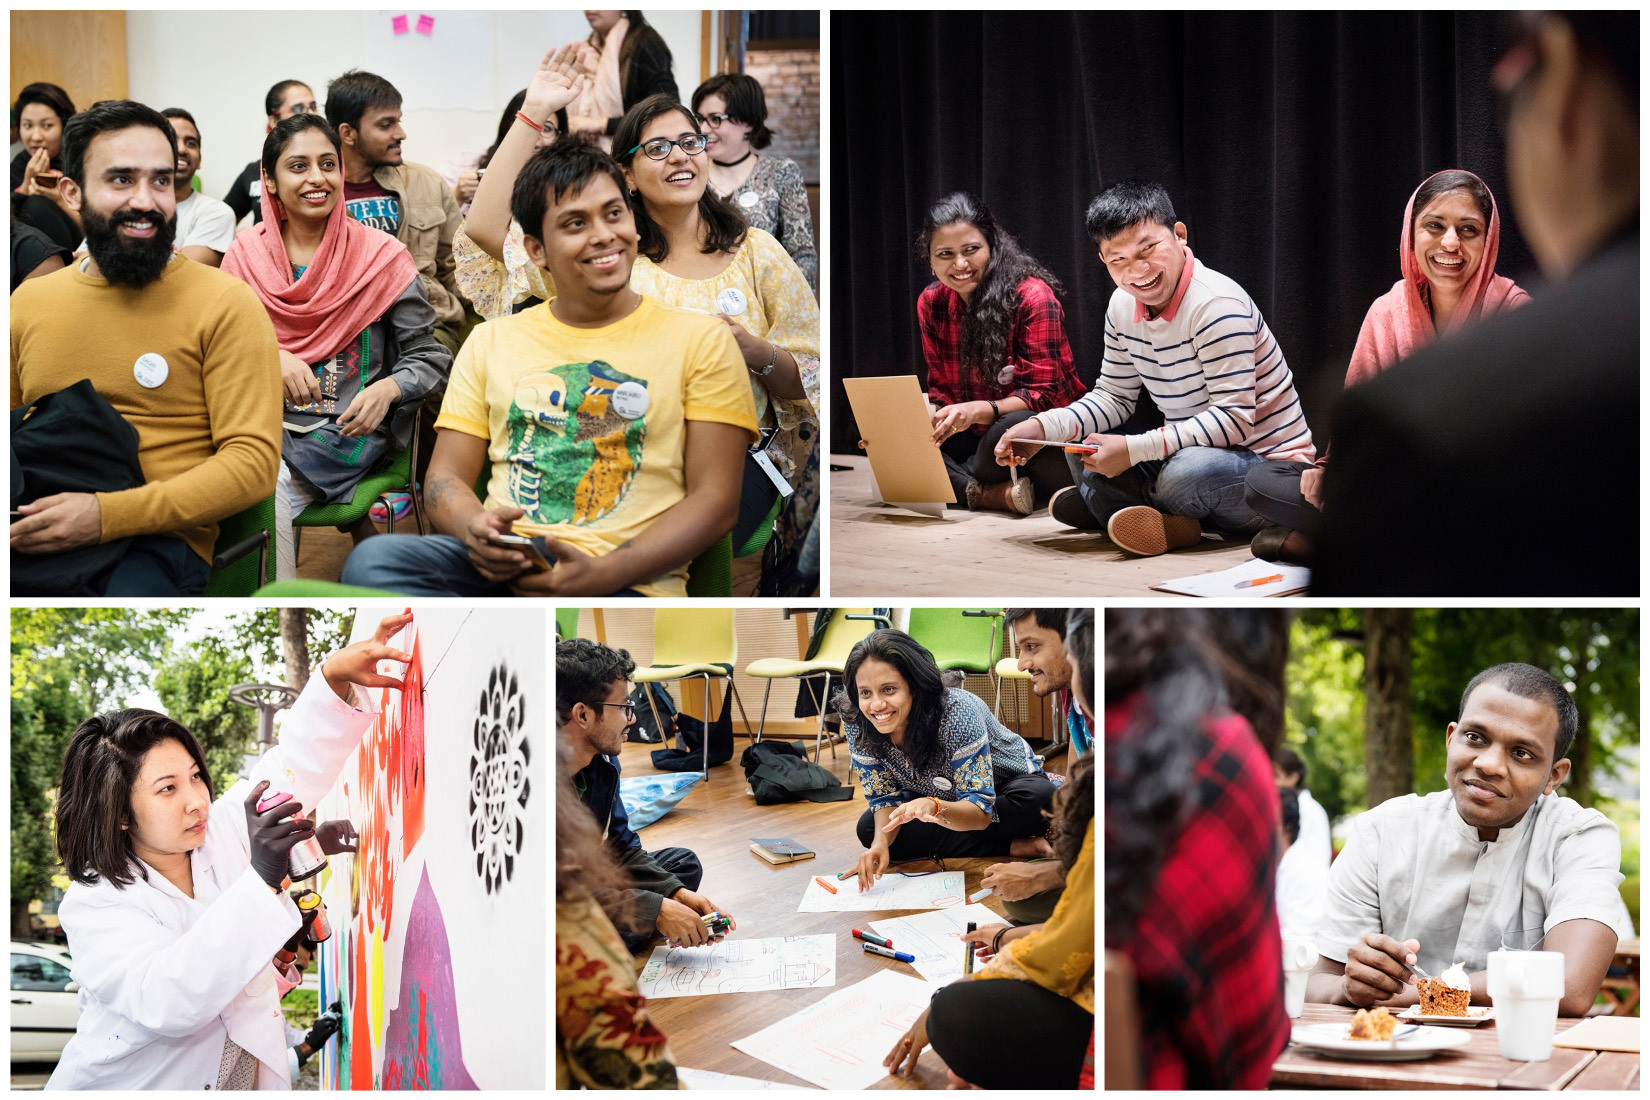 Swedish Institute's Young Connectors of the Future Programme 2018